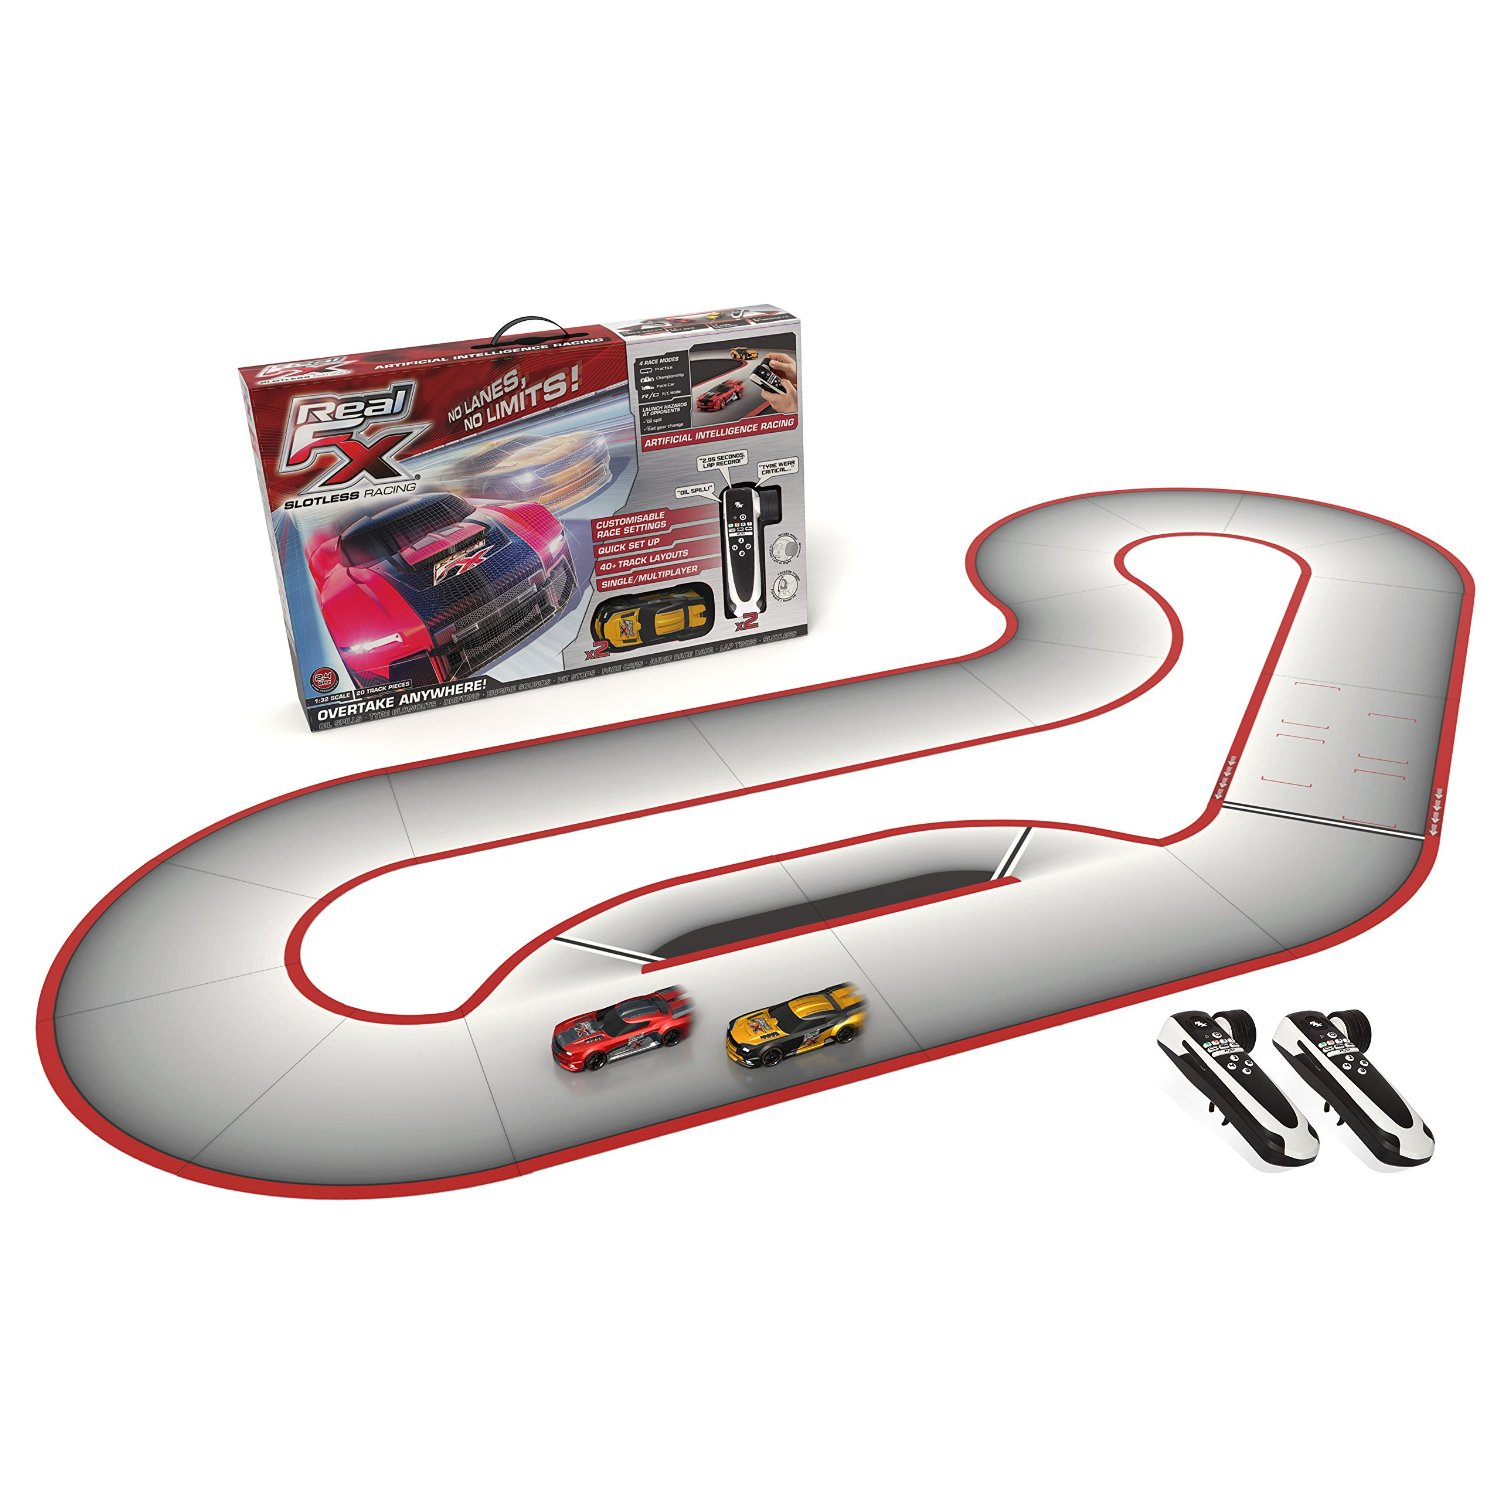 Watch likewise Track Layout besides Custom Track Builders likewise Vivo Xplay 3s Smartphone Vivo Xplay 3s Phone Vivo Xplay 3s Cell Phone Vivo Xplay 3s Mobile Phone together with Auto World 164 Scale 1958 Plymouth Fury Christine Diecast Model Replica. on home slot car tracks